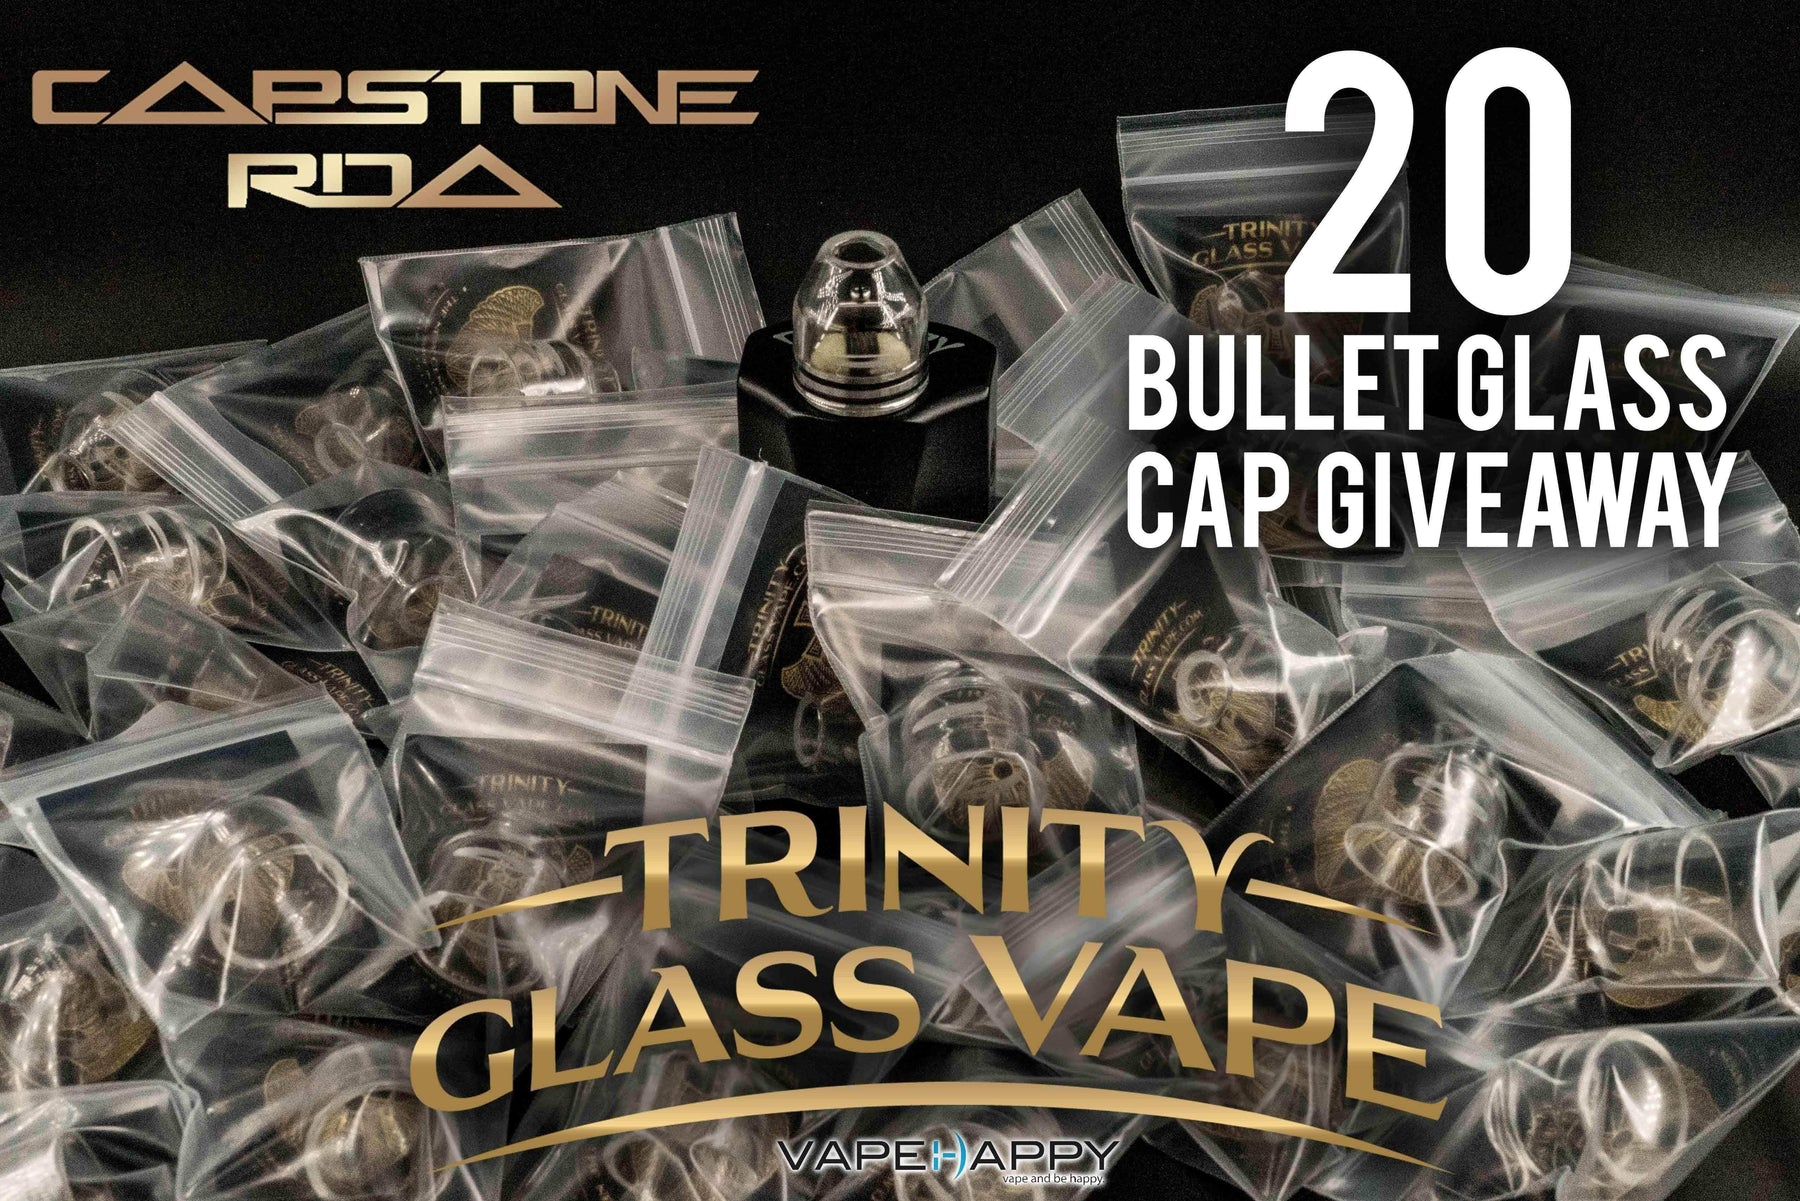 We're Giving Away 20 Capstone RDA Bullet Glass Caps By Trinity Glass Vape! CLOSED